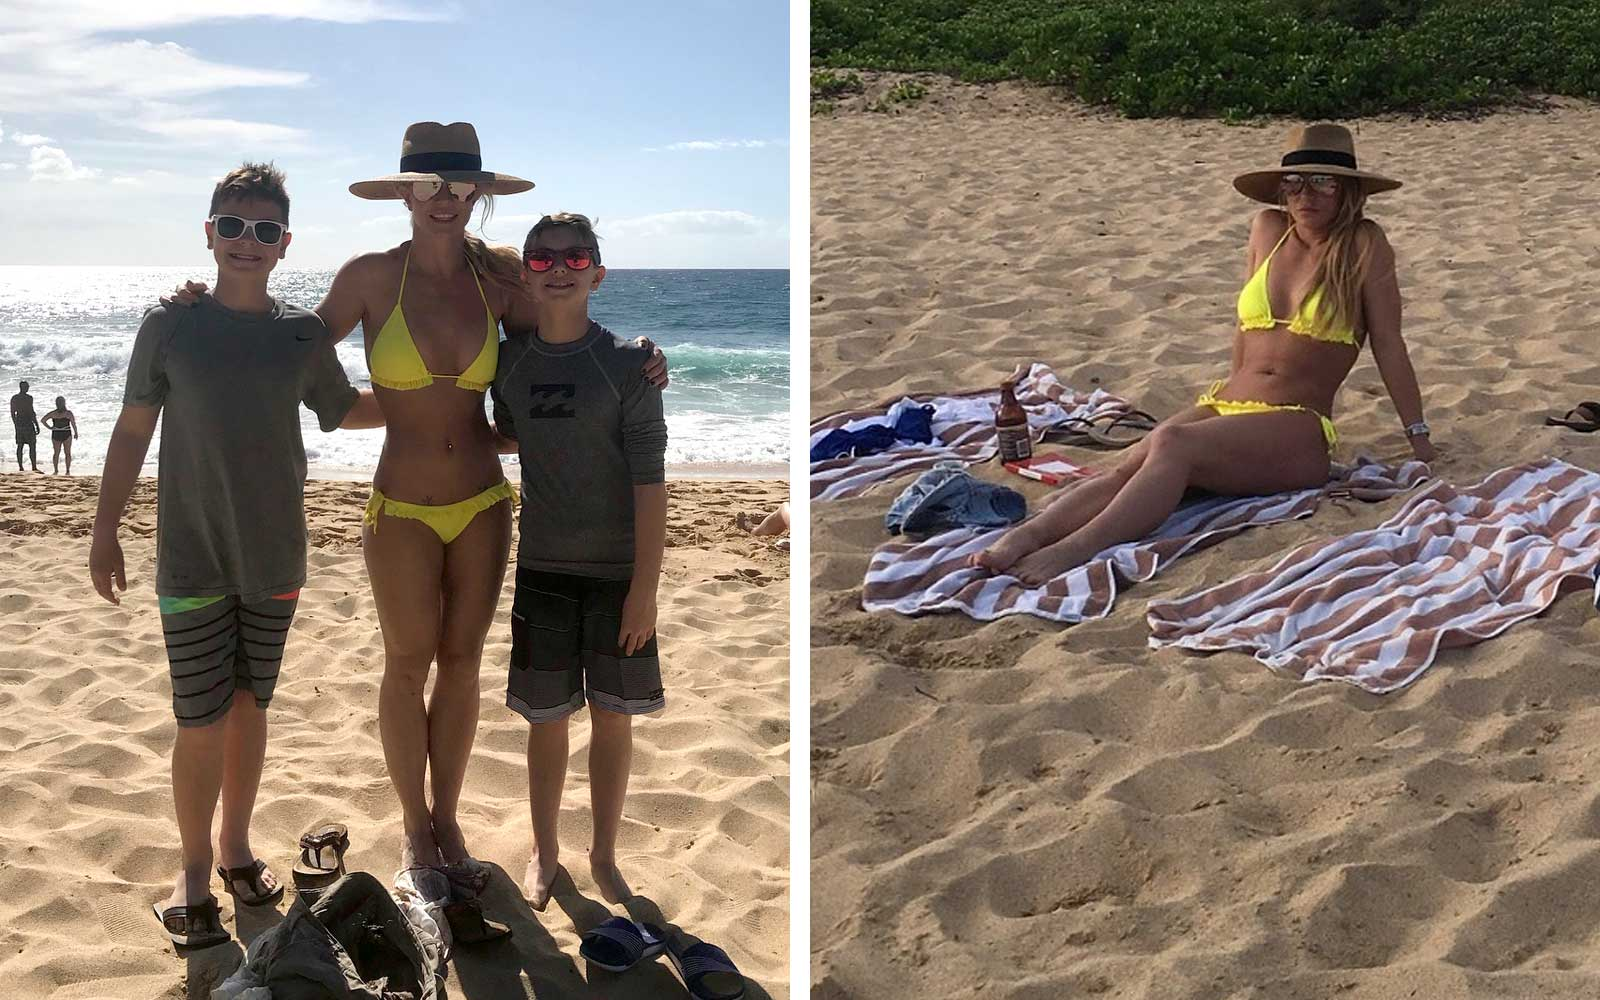 Britney Spears and her sons on vacation in Hawaii